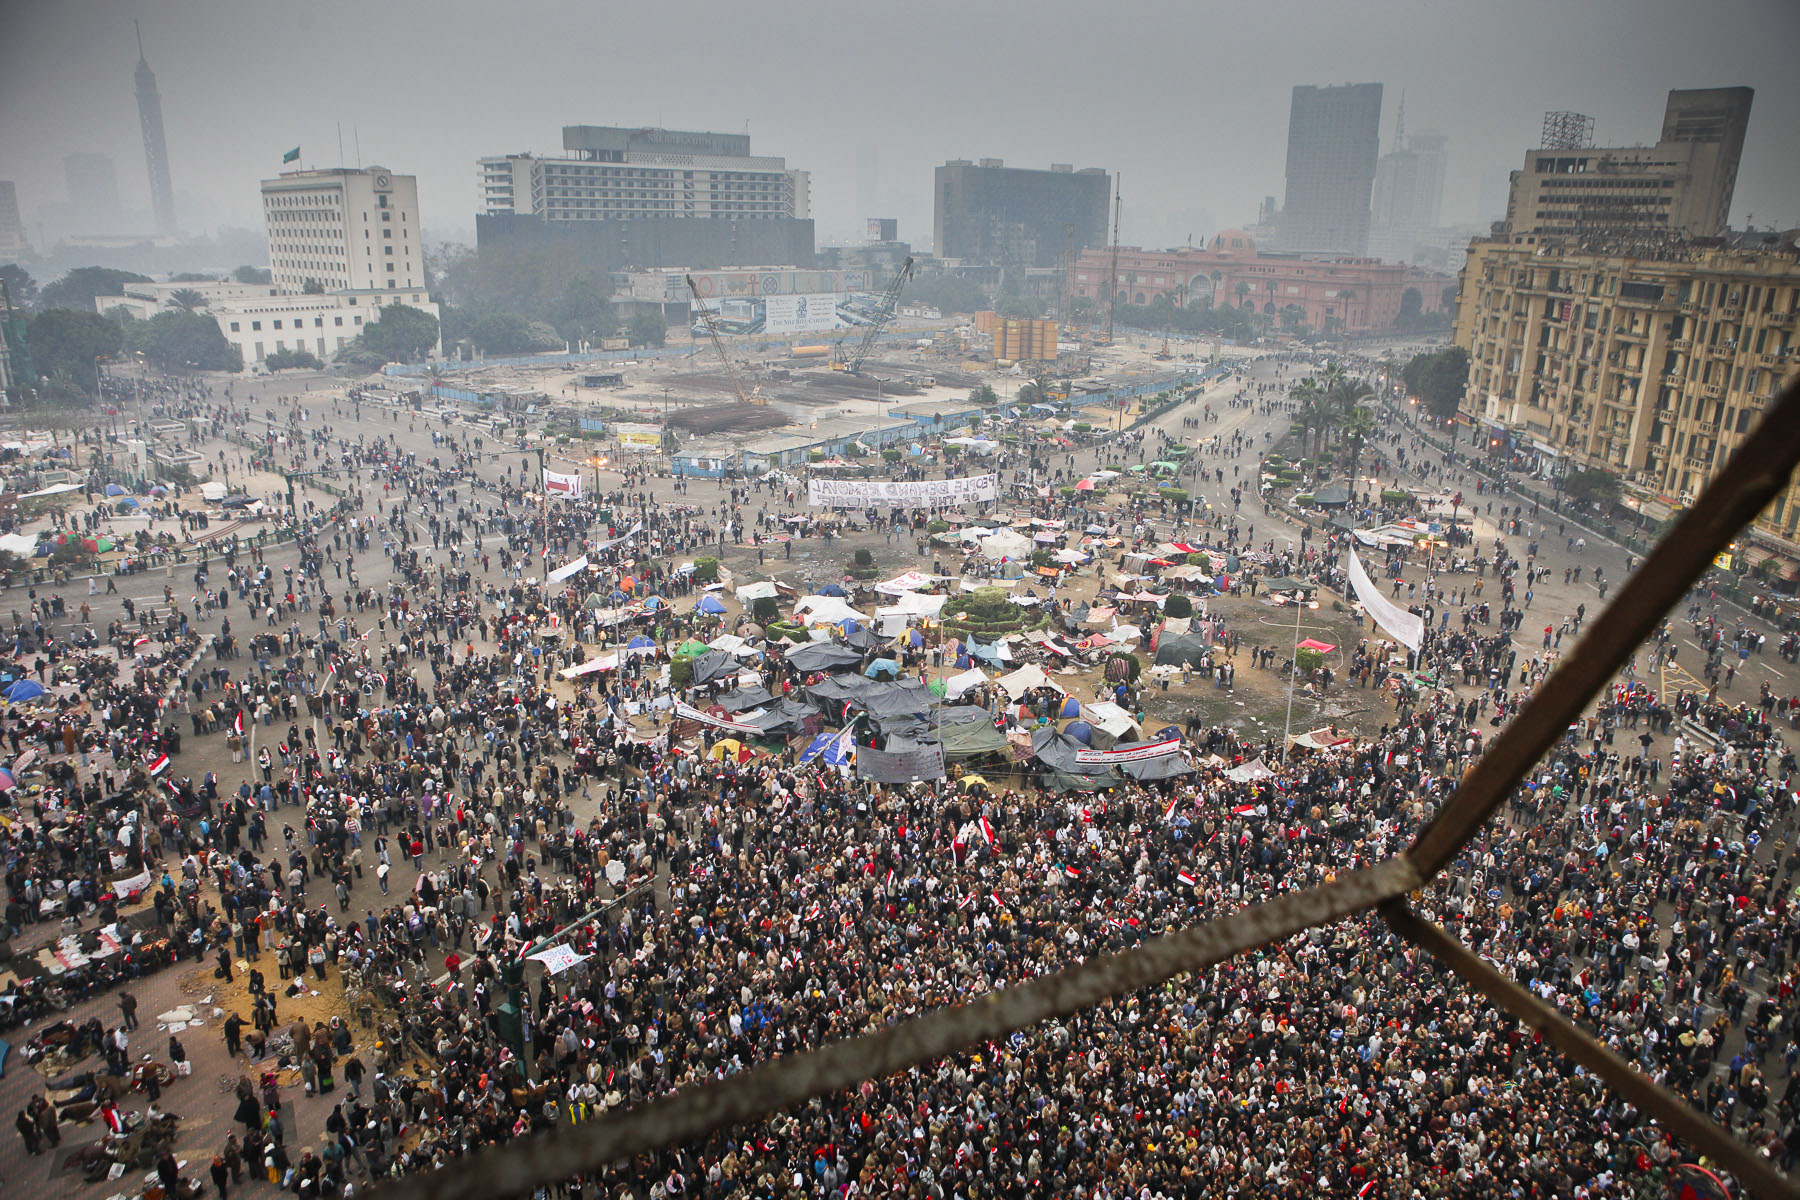 Demonstrators protest against President Mubarak's regime on Tahrir Square on Saturday February 5 2011